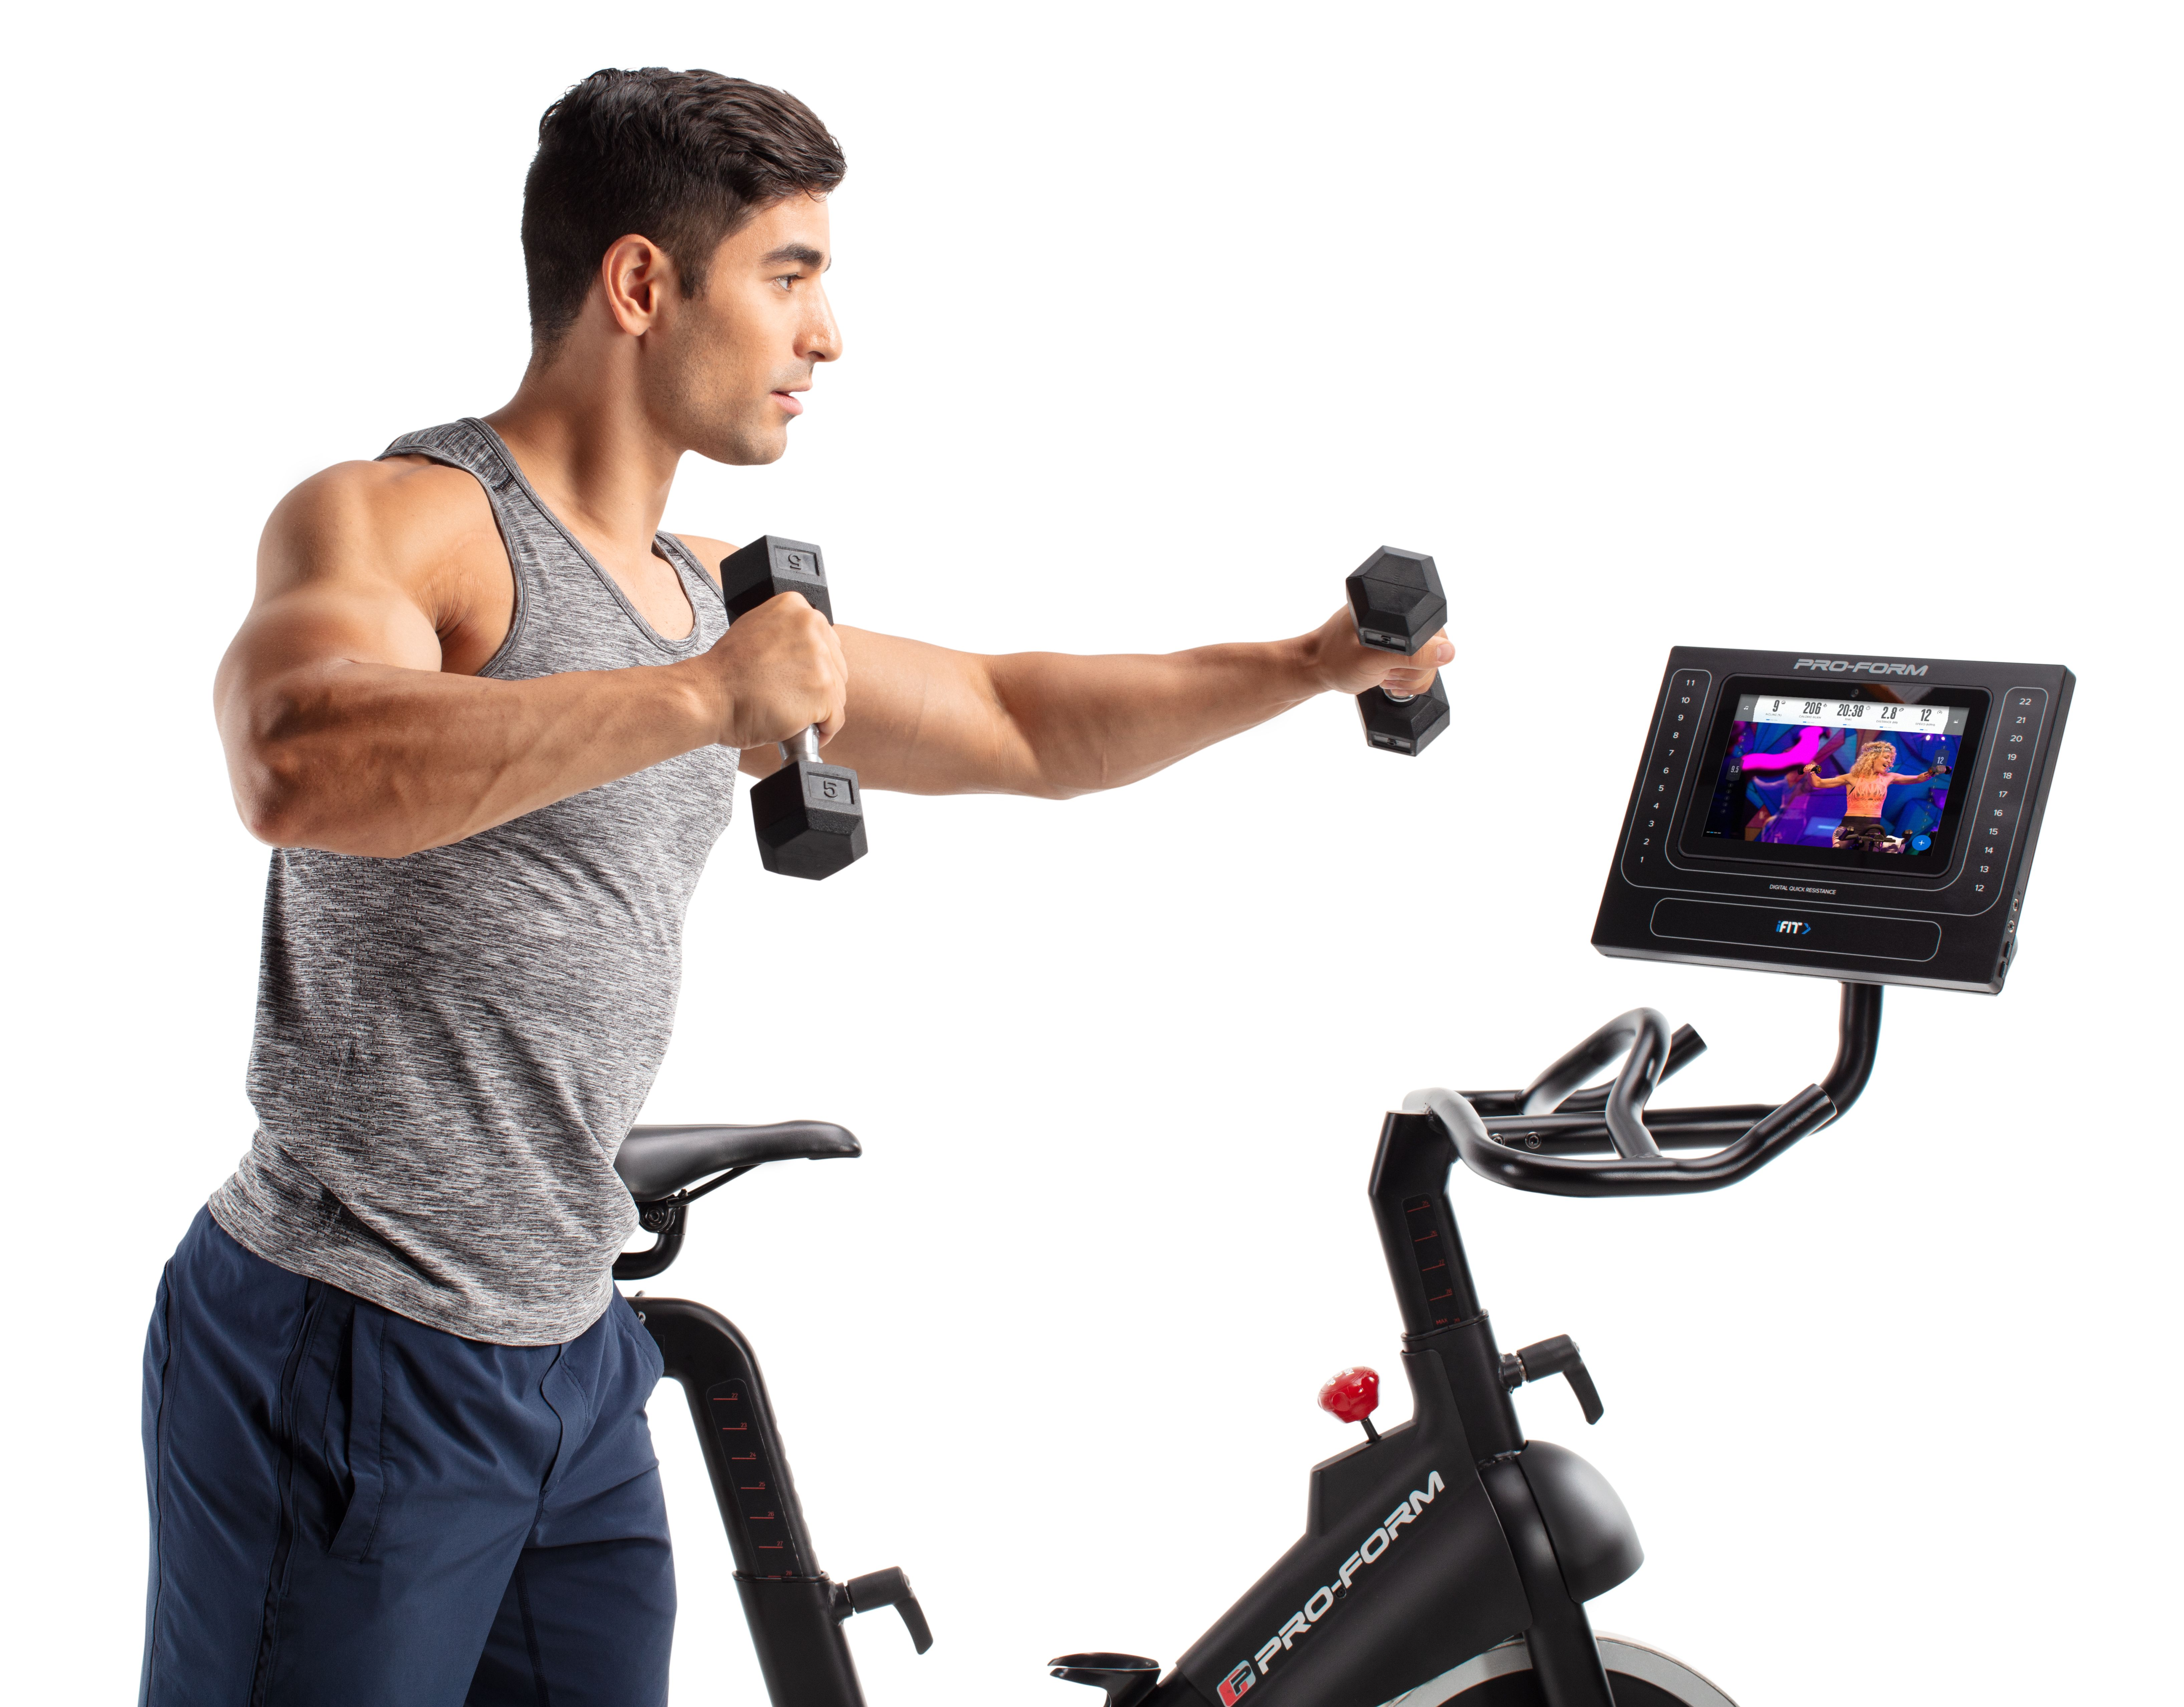 ProForm Smart Power 10 0 Studio Cycle with 1-Year iFit Coach Included,  Assembly Required